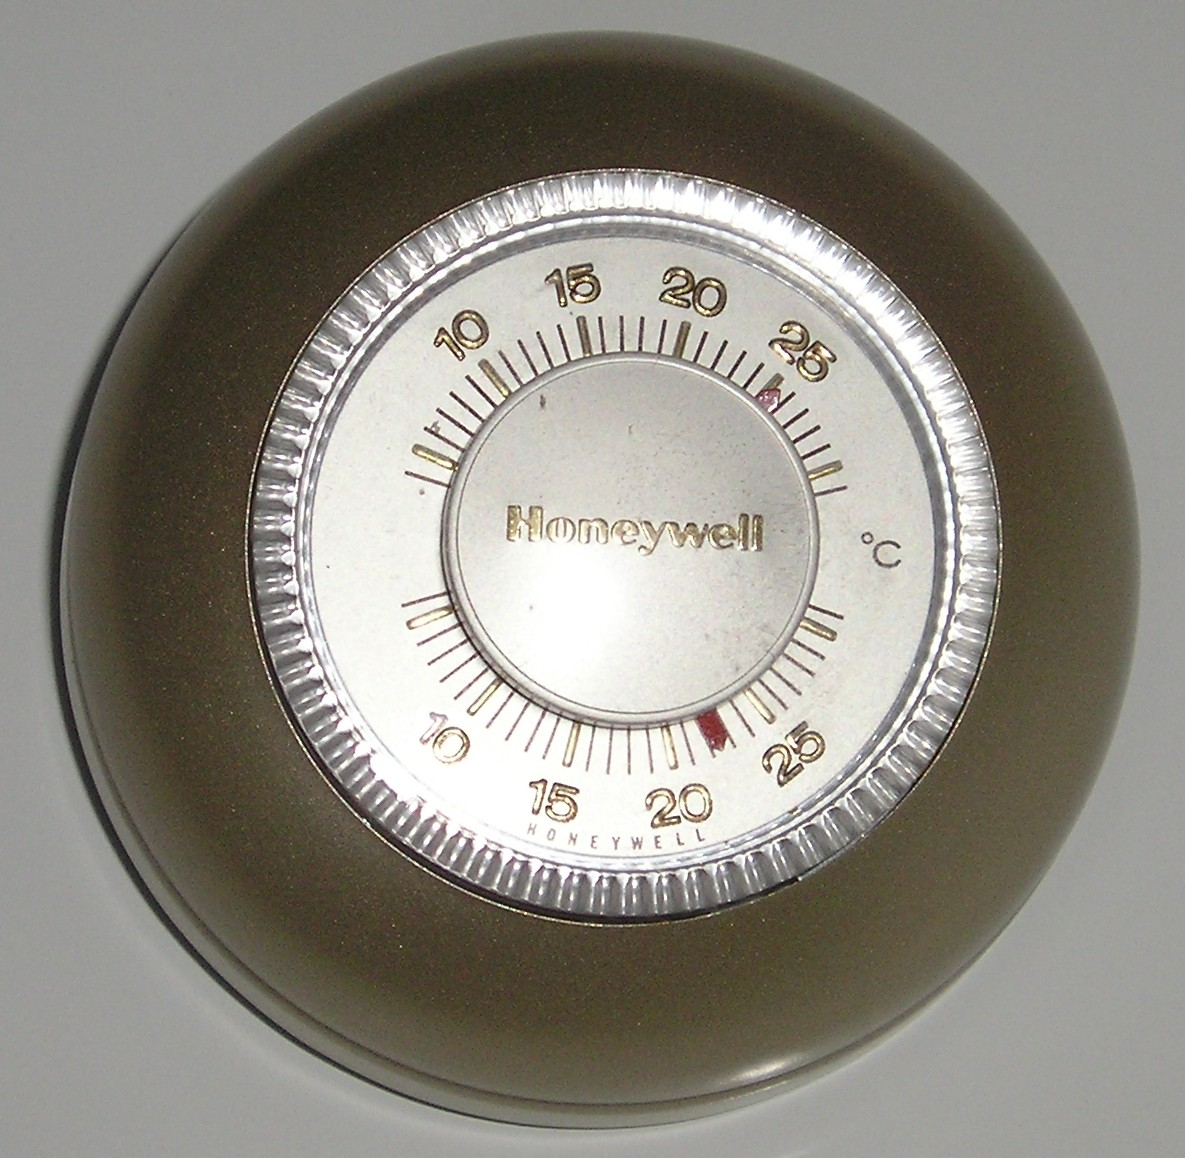 Honeywell Round Thermostat Manual Basic Instruction Wiring Diagram Fresh Elegant Image Rh Mainetreasurechest Com Instructions